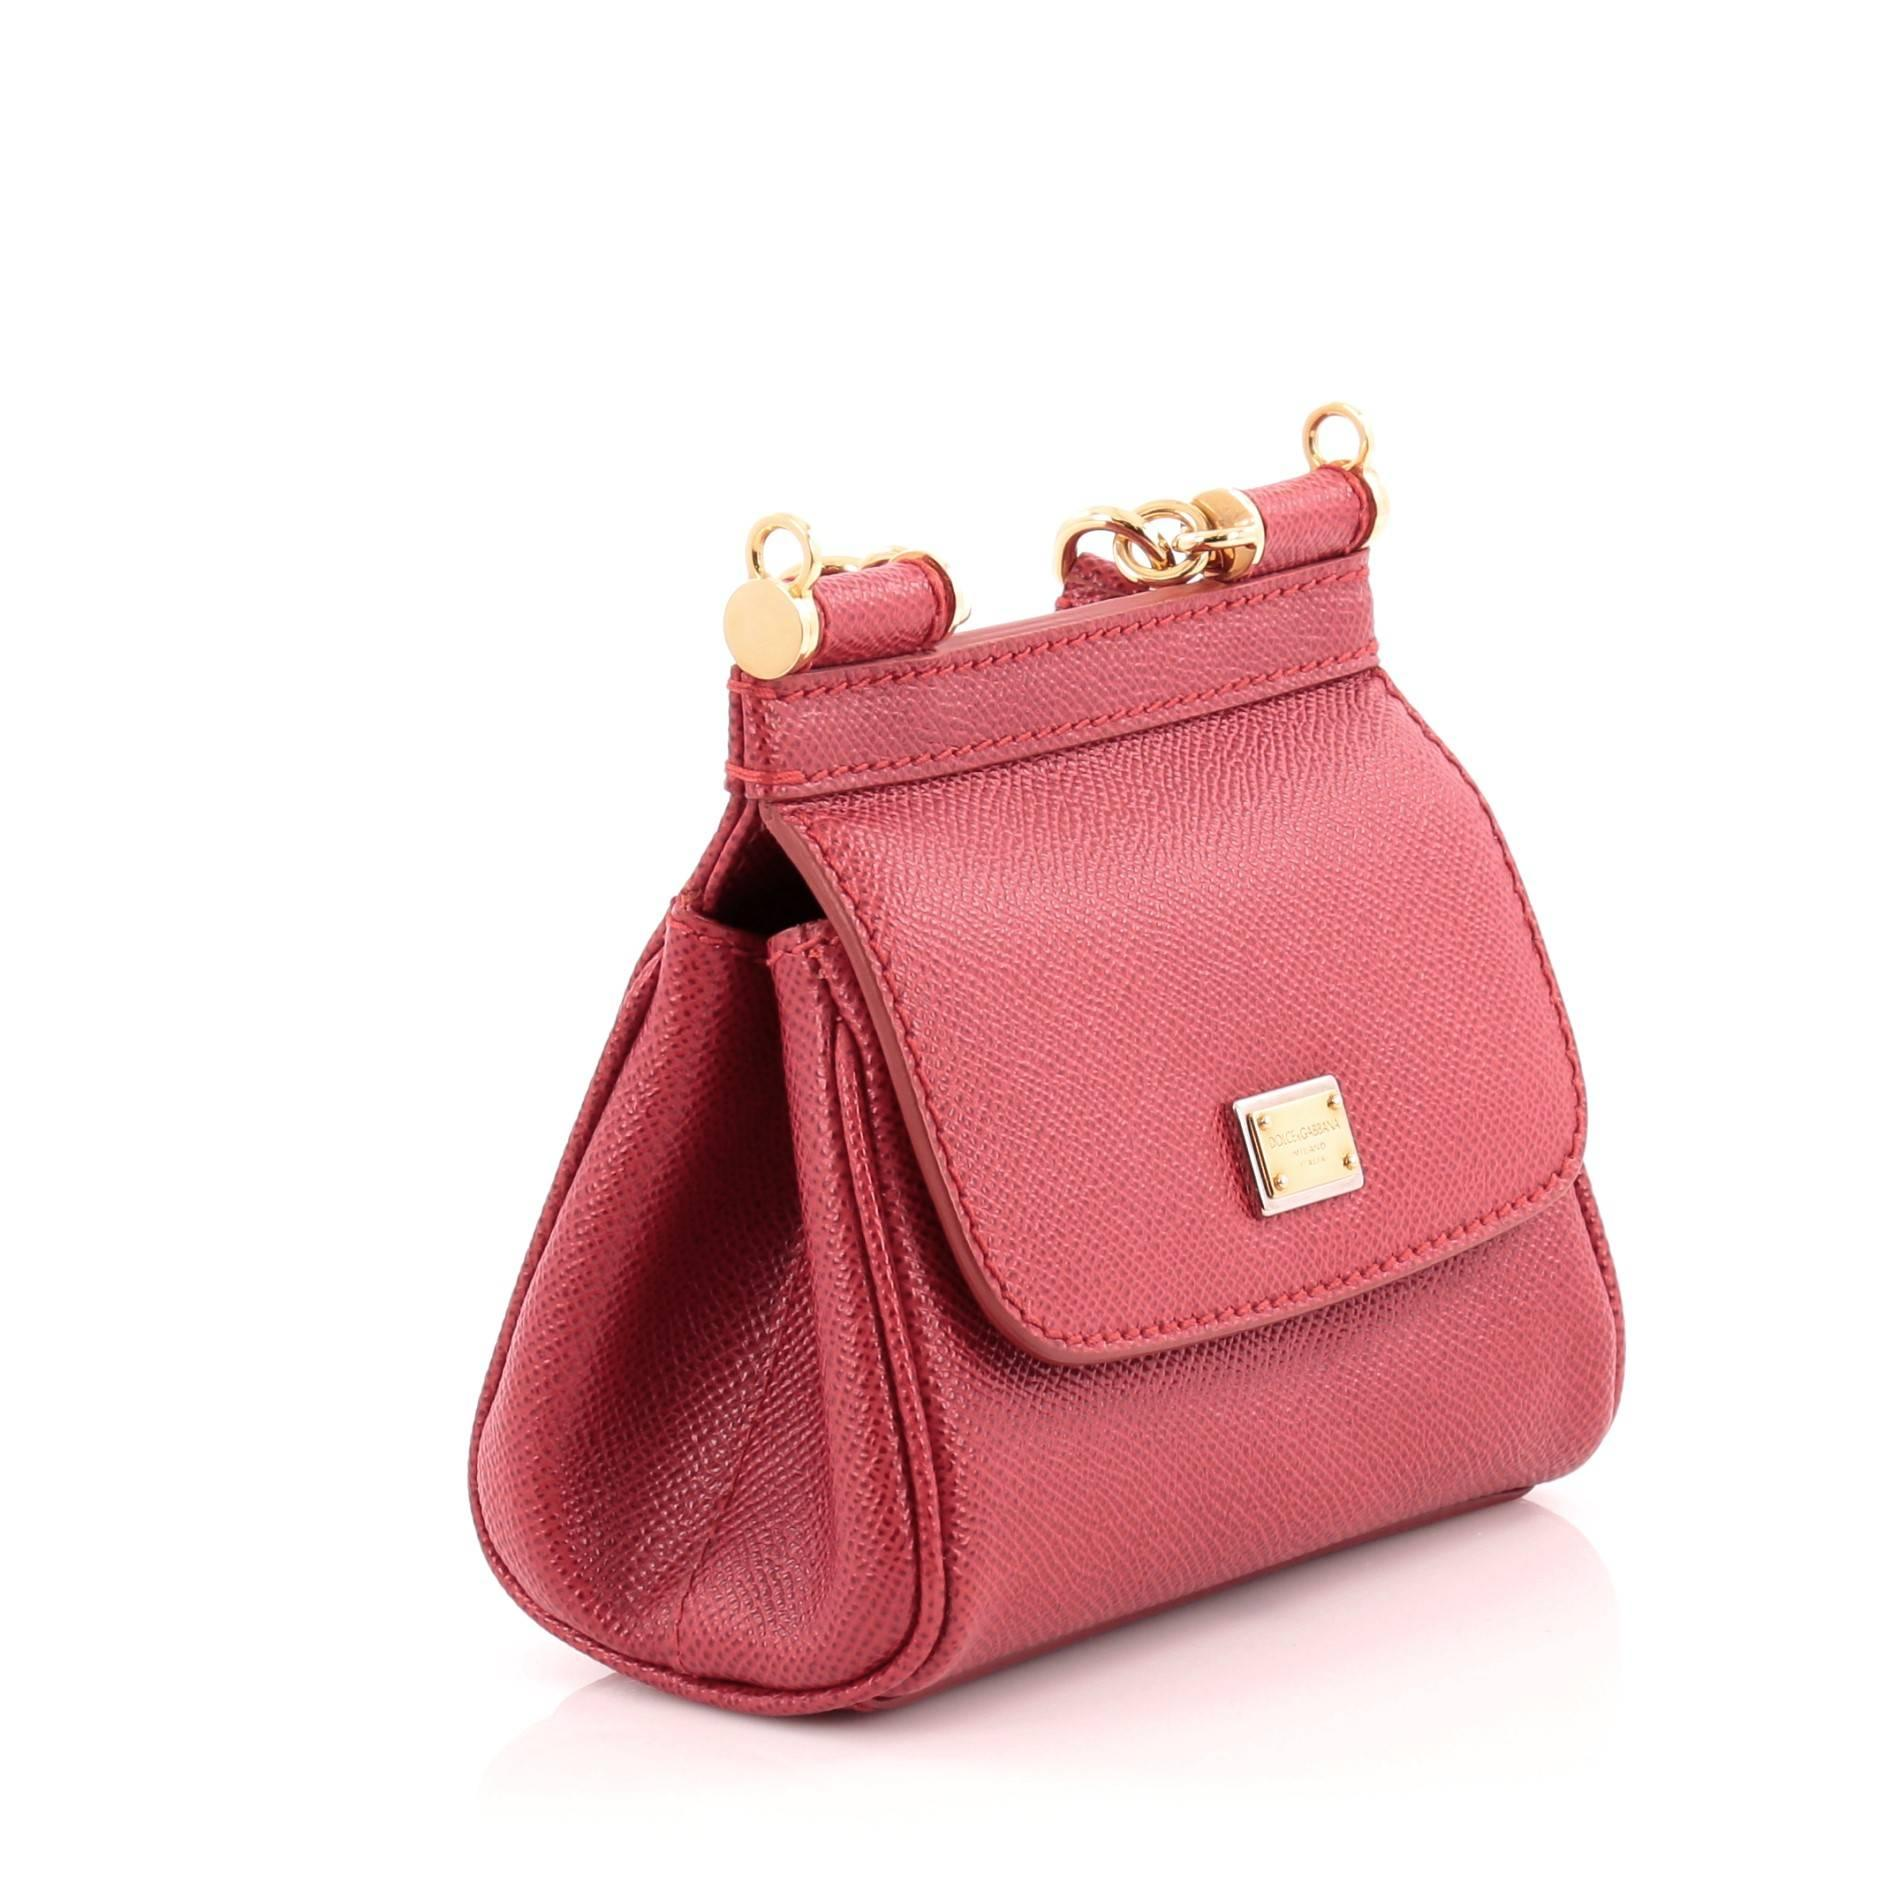 87a382ef27 Dolce and Gabbana Miss Sicily Handbag Leather Micro at 1stdibs